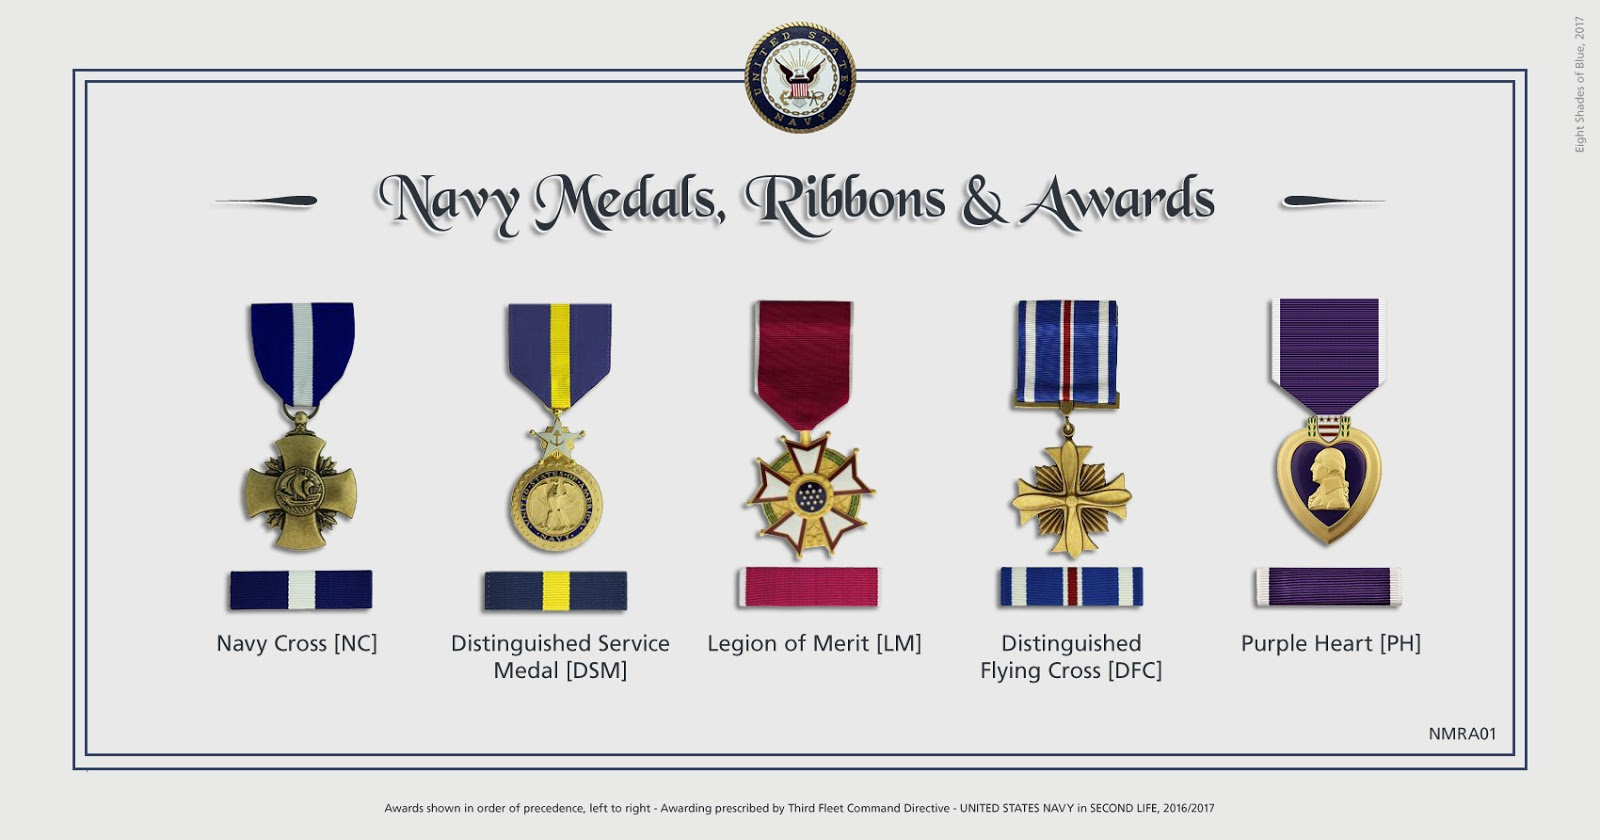 N A S  Miramar NFWS / SL: Medals and Awards of Third Fleet - Navy